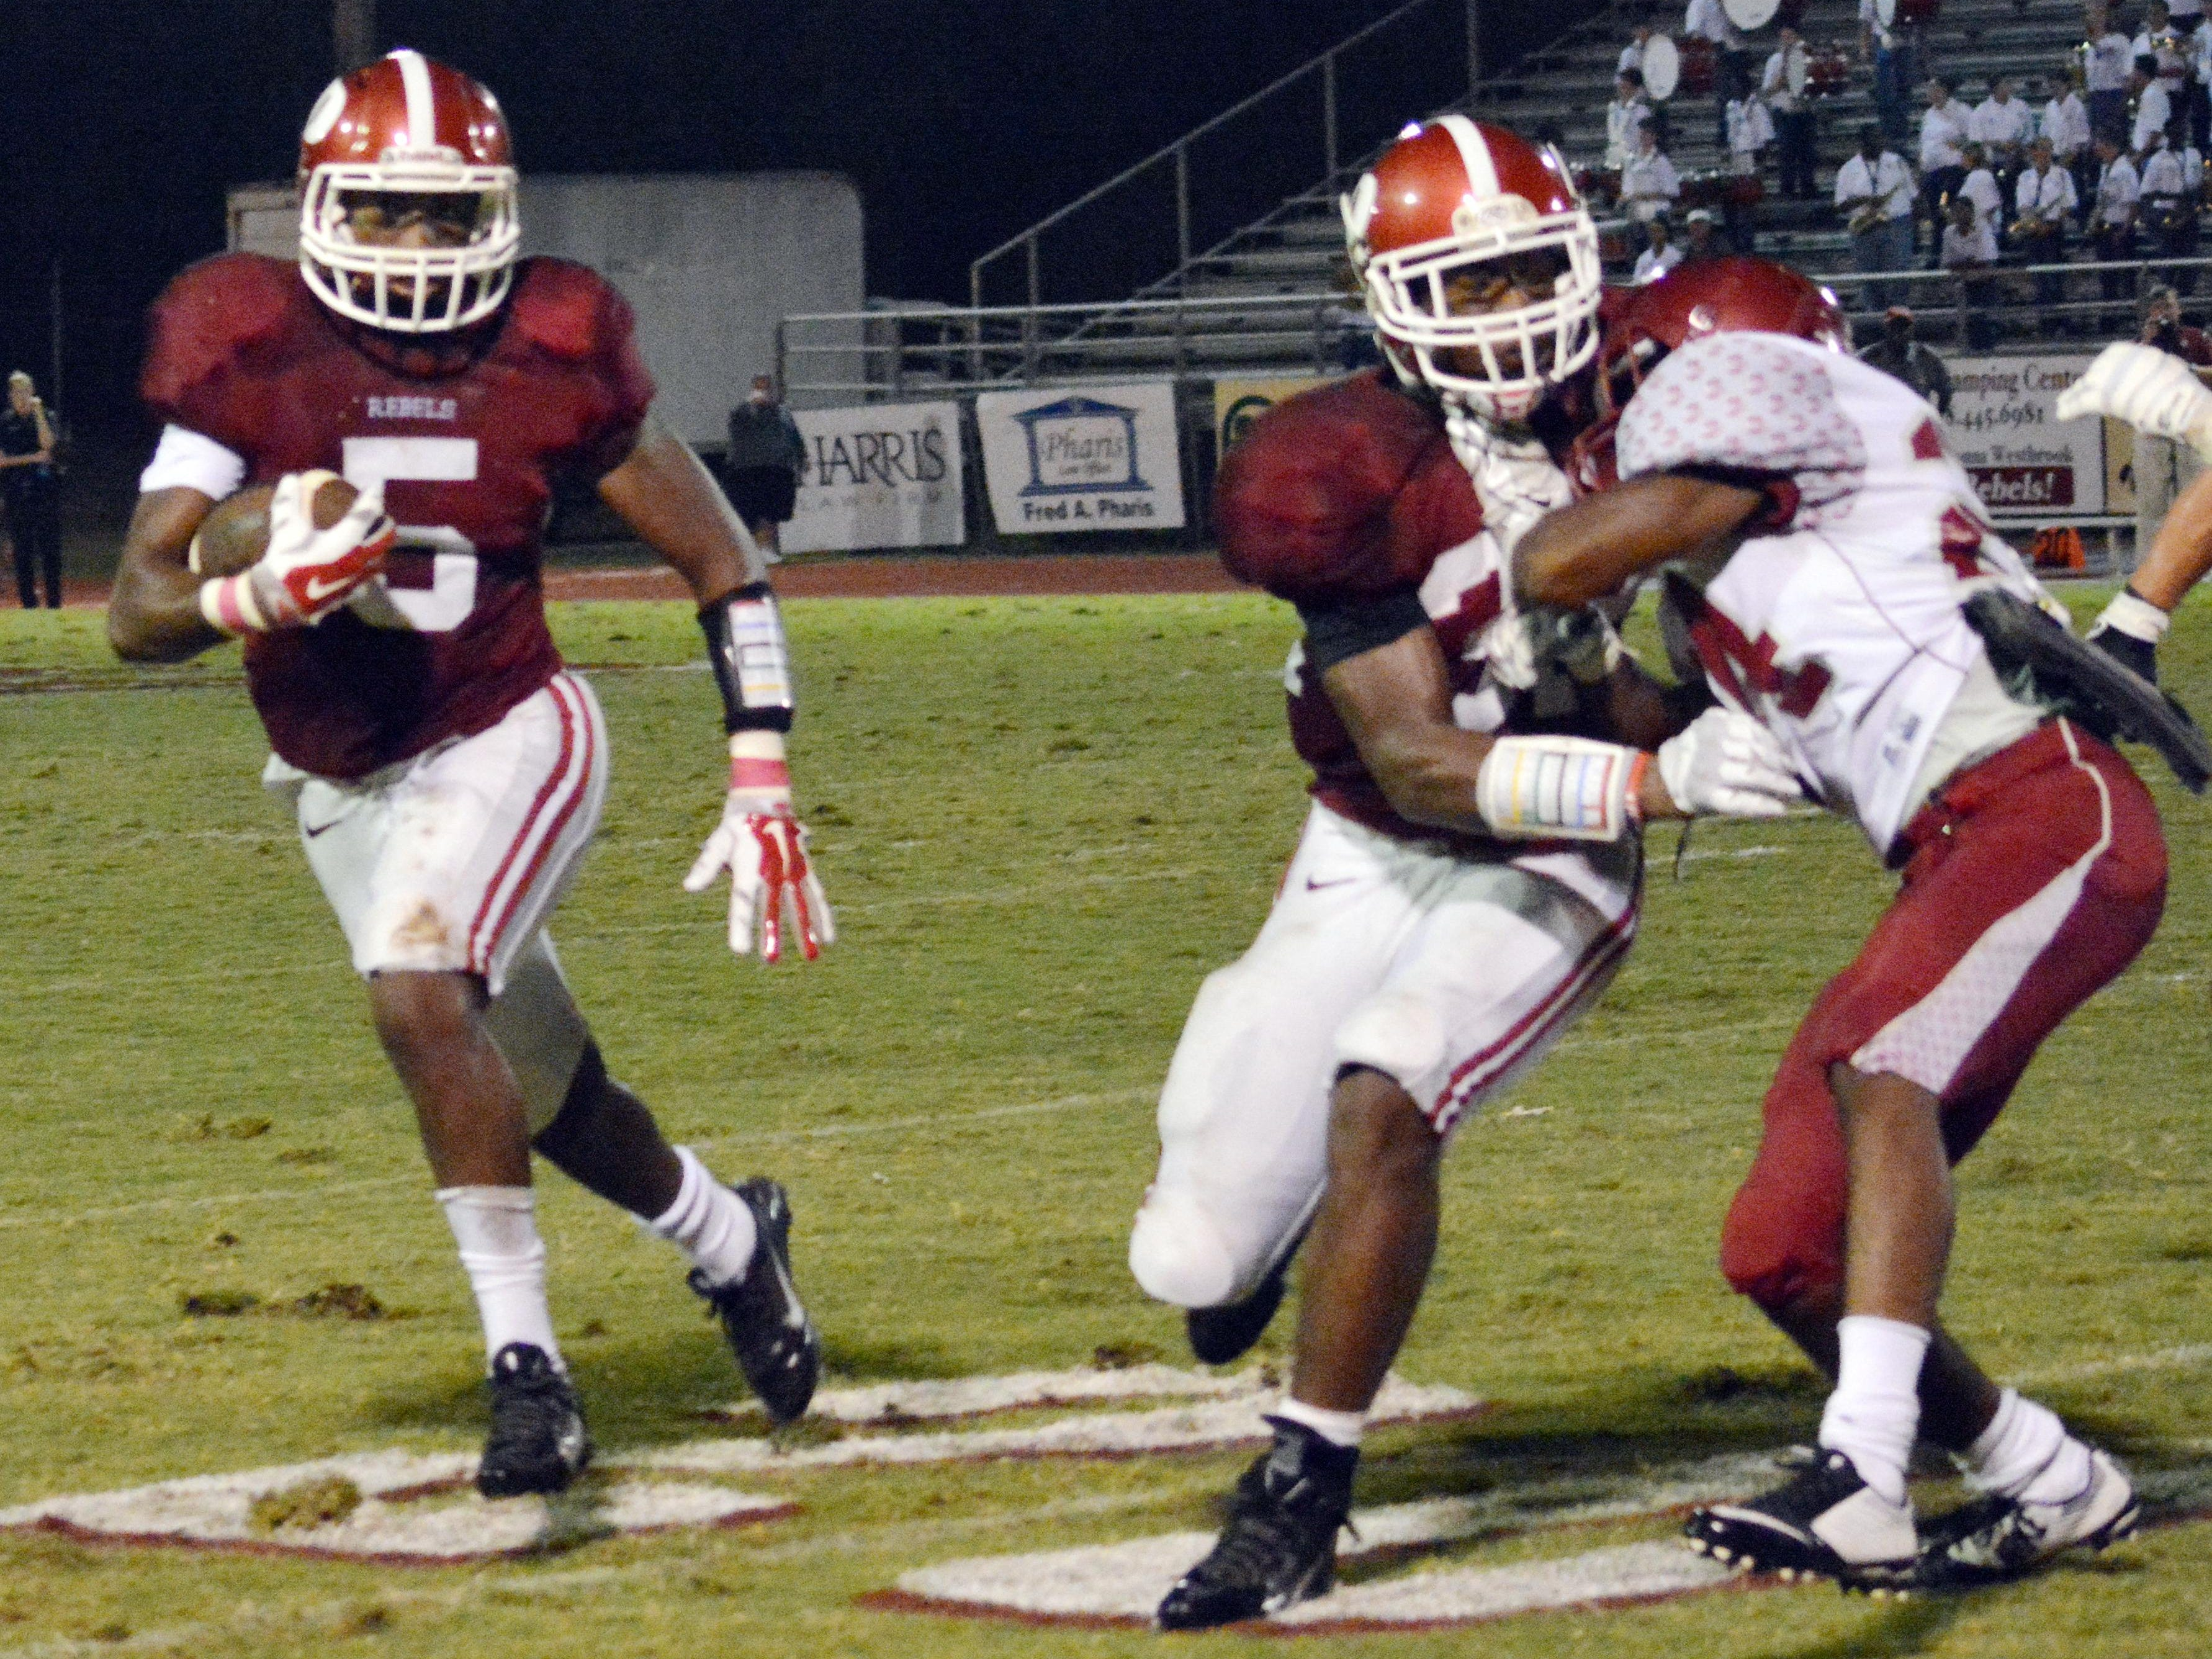 Landon King (32) blocks a Ouachita defender to open space for Jarious Green (5). Green, a senior, and King, a junior, will form a dynamic backfield duo for Pineville in 2015.